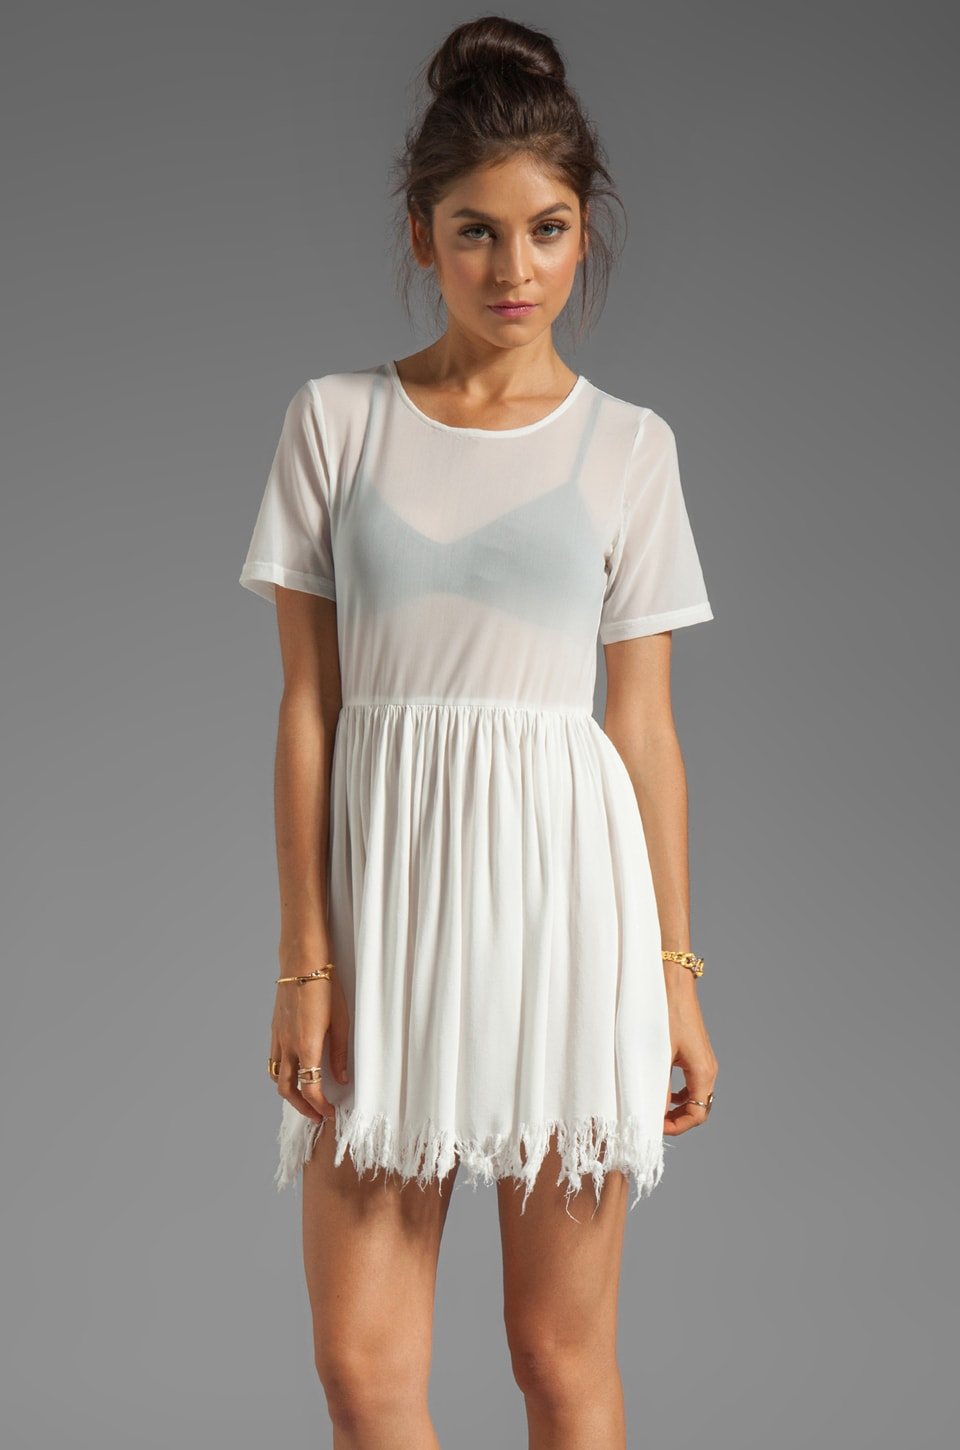 UNIF Shredder Dress in White